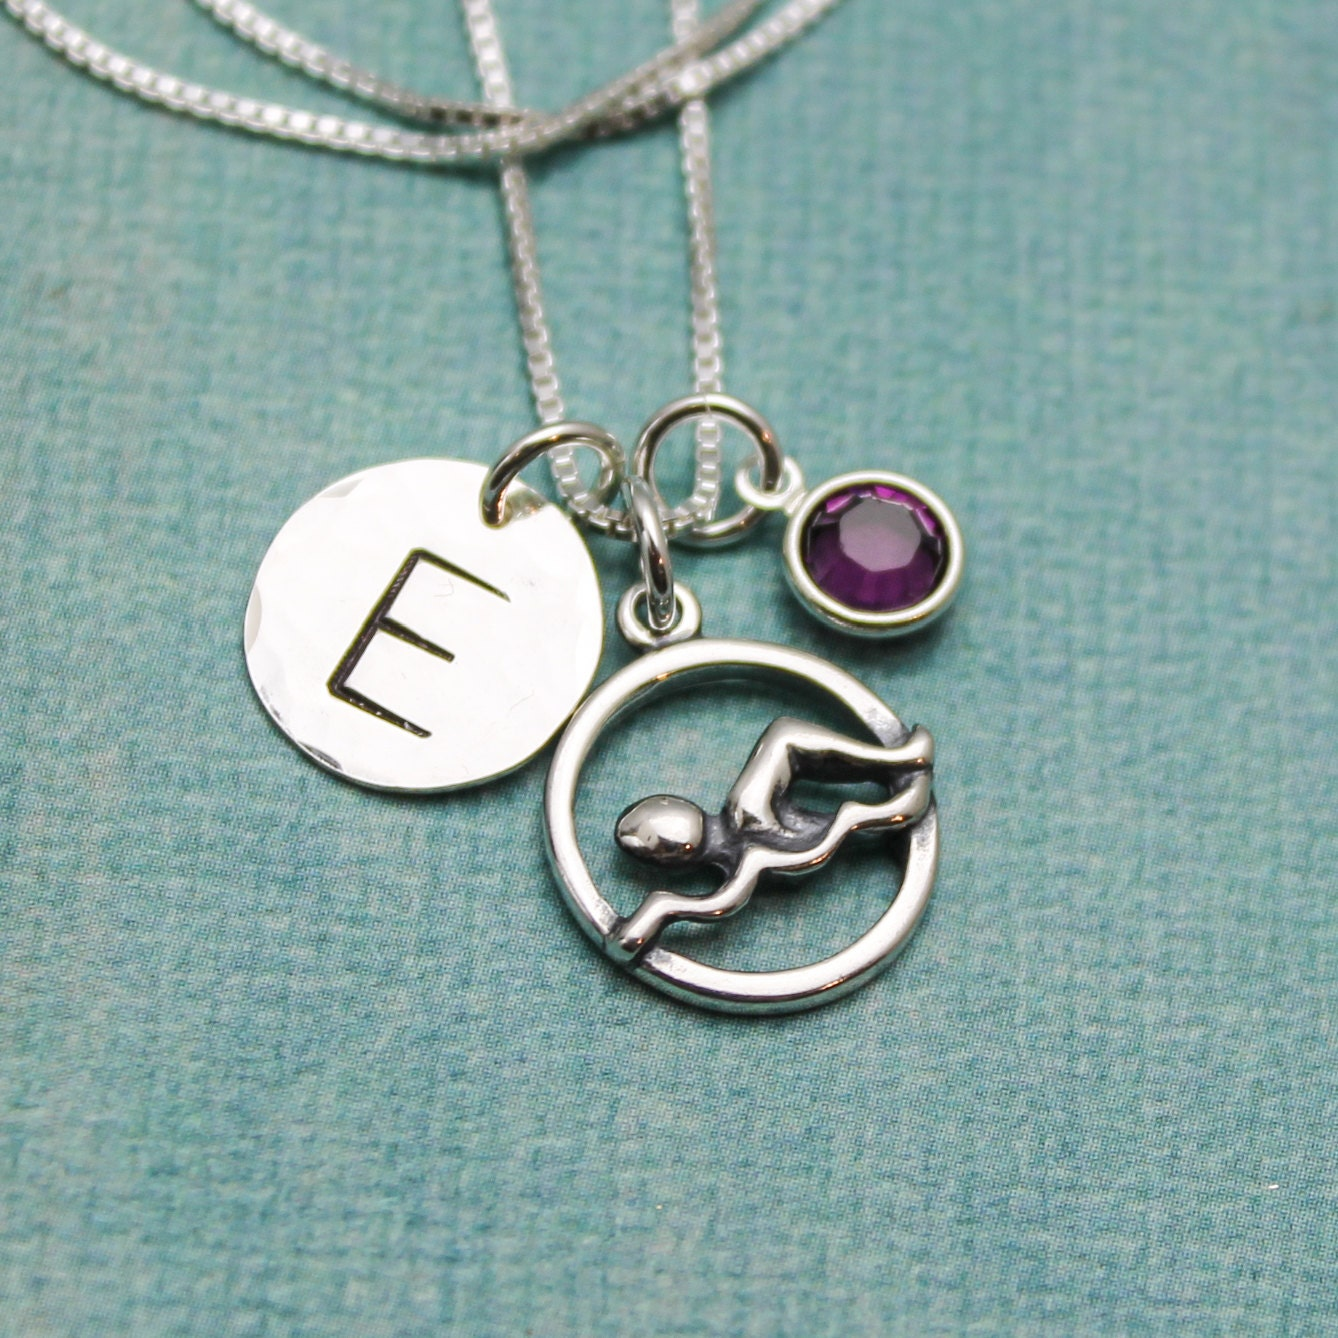 swimmer jewelry personalized swimmer charm necklace swimming necklace swim 7141